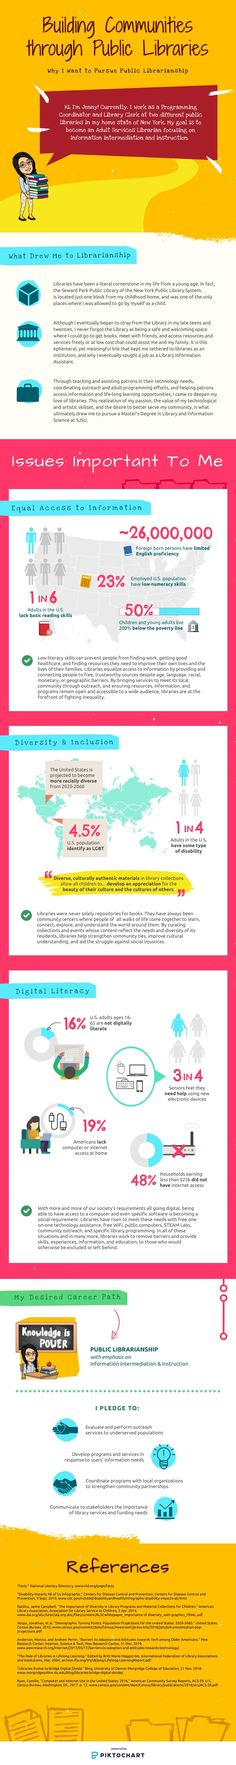 Jenny Chin's scholarship-winning infographic explains why she wants to pursue a career in public librarianship. Student Scholarships, Dream Career, New Students, Explain Why, Infographic, Public, How To Apply, Motivation, Infographics